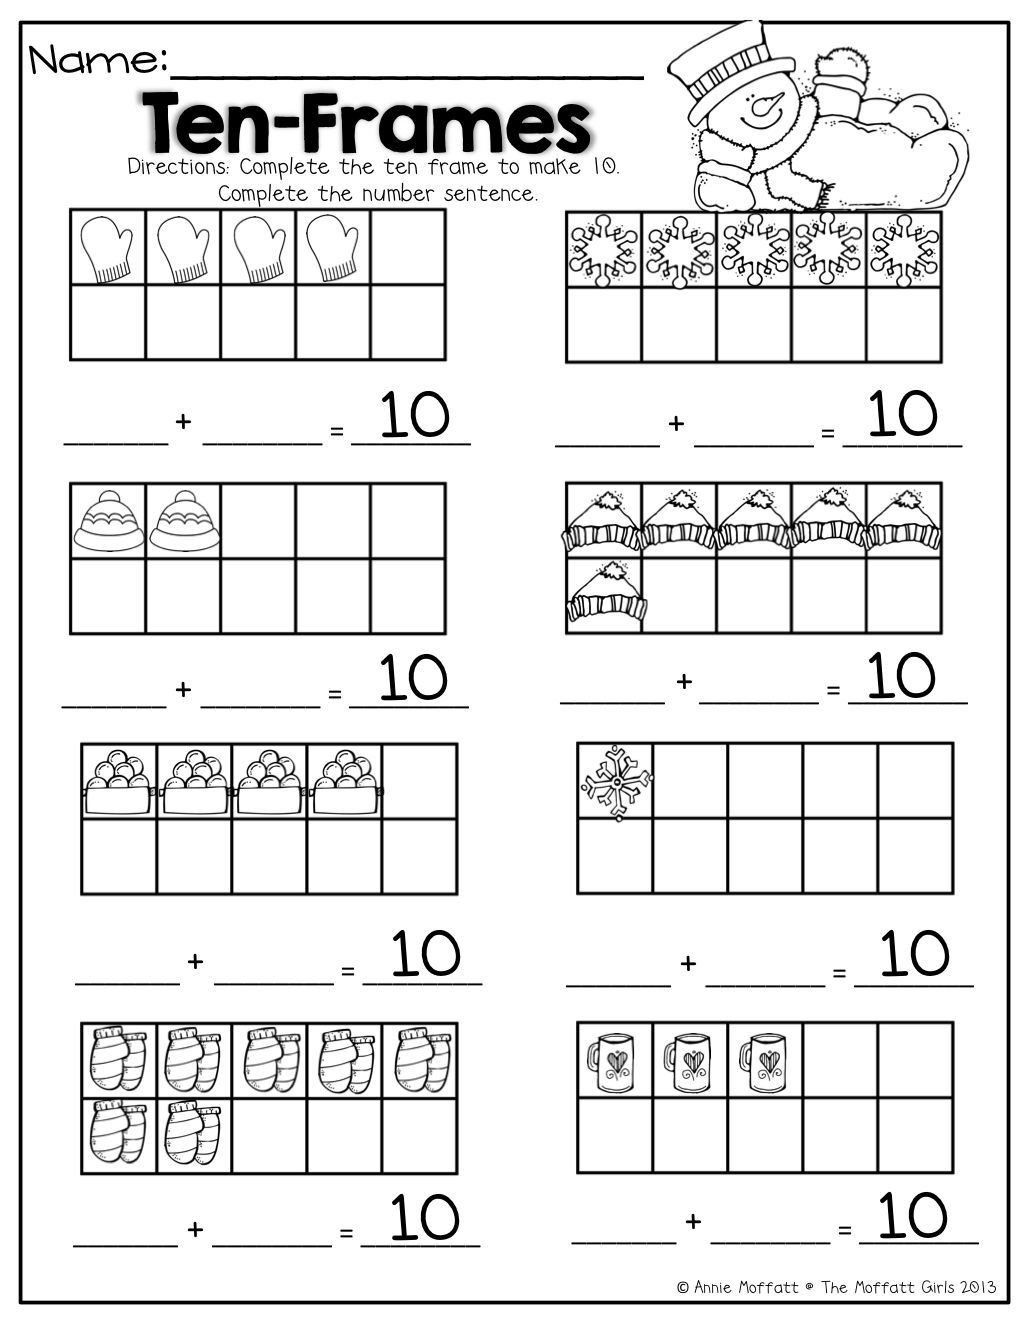 Printable Typing Worksheets Typekids Online Typing Course